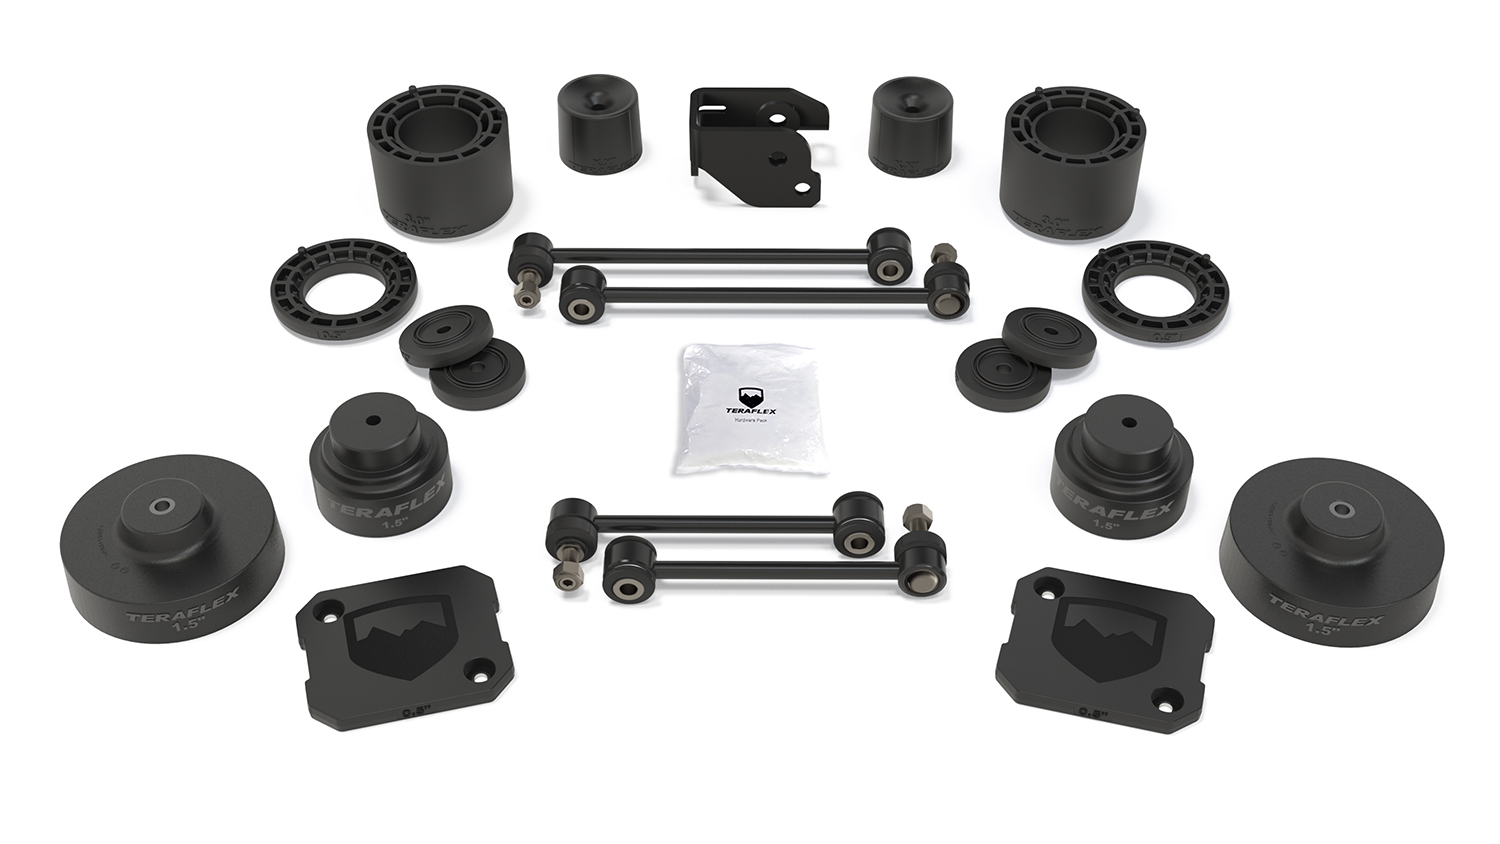 Teraflex 3.5in Performance Spacer Lift Kit - No Shocks - JT